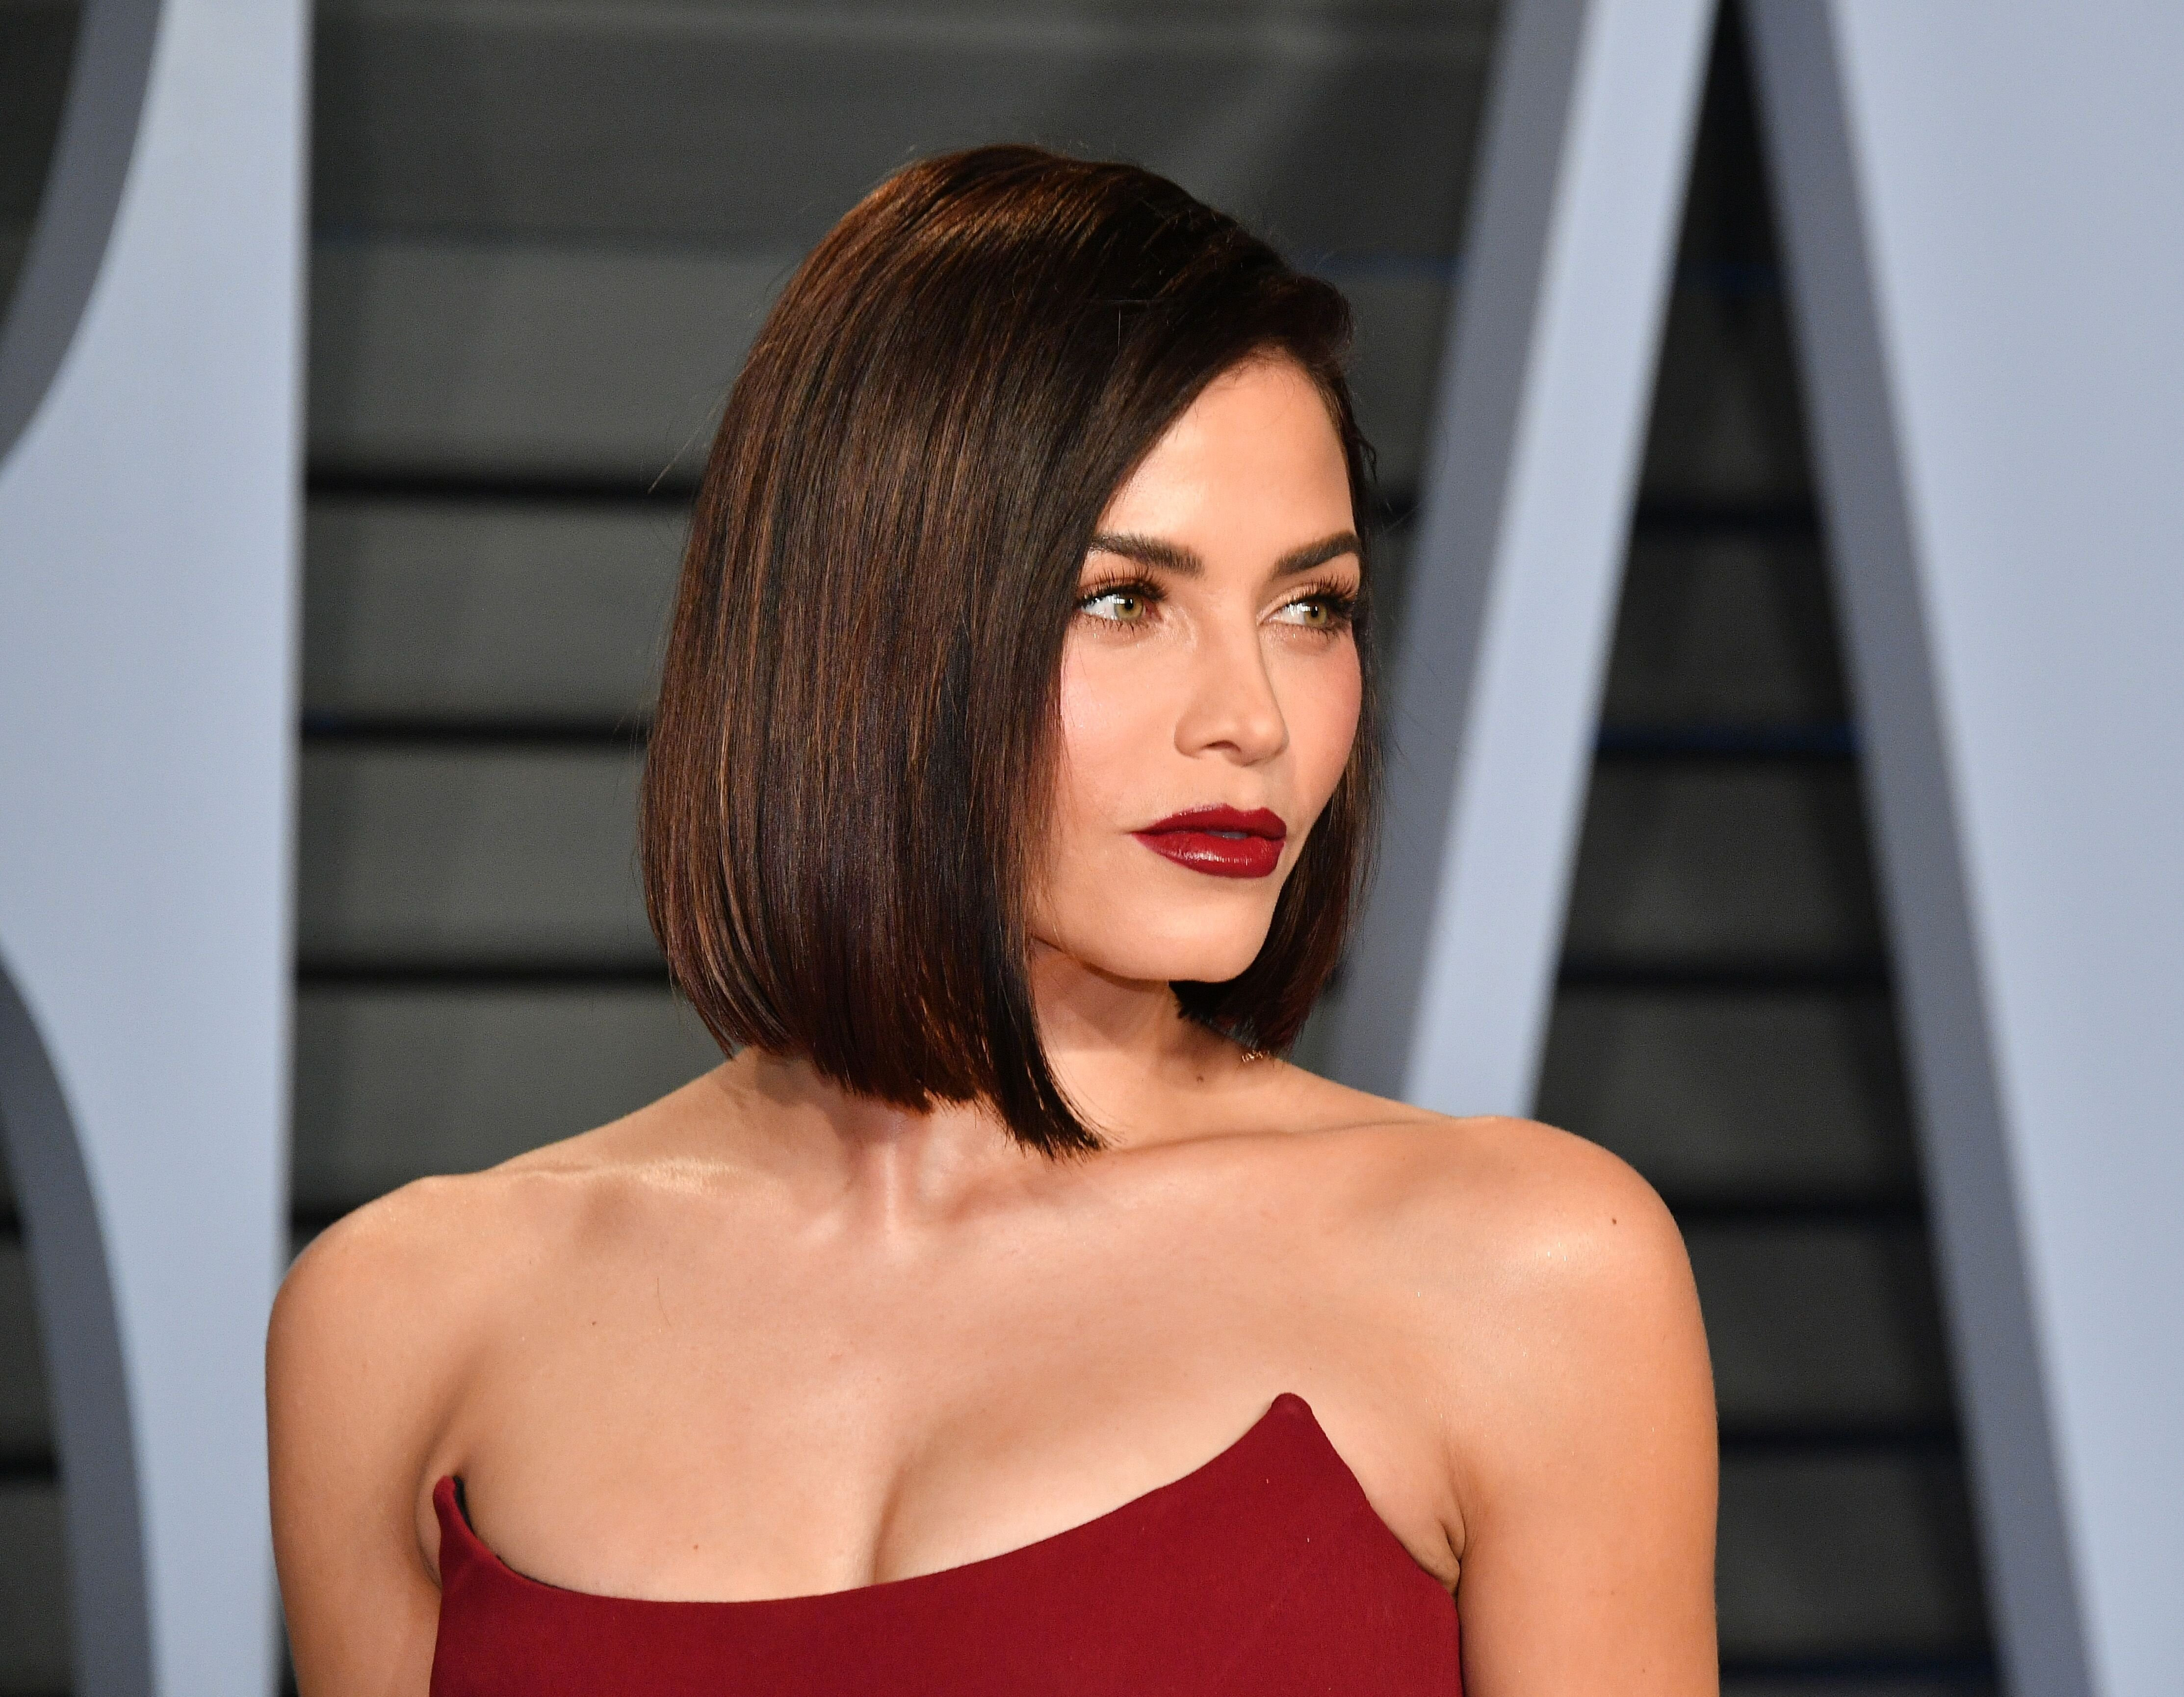 Jenna Dewan at the Vanity Fair Oscar Party at Wallis Annenberg Center for the Performing Arts on March 4, 2018, in Beverly Hills, California | Photo: Dia Dipasupil/Getty Images